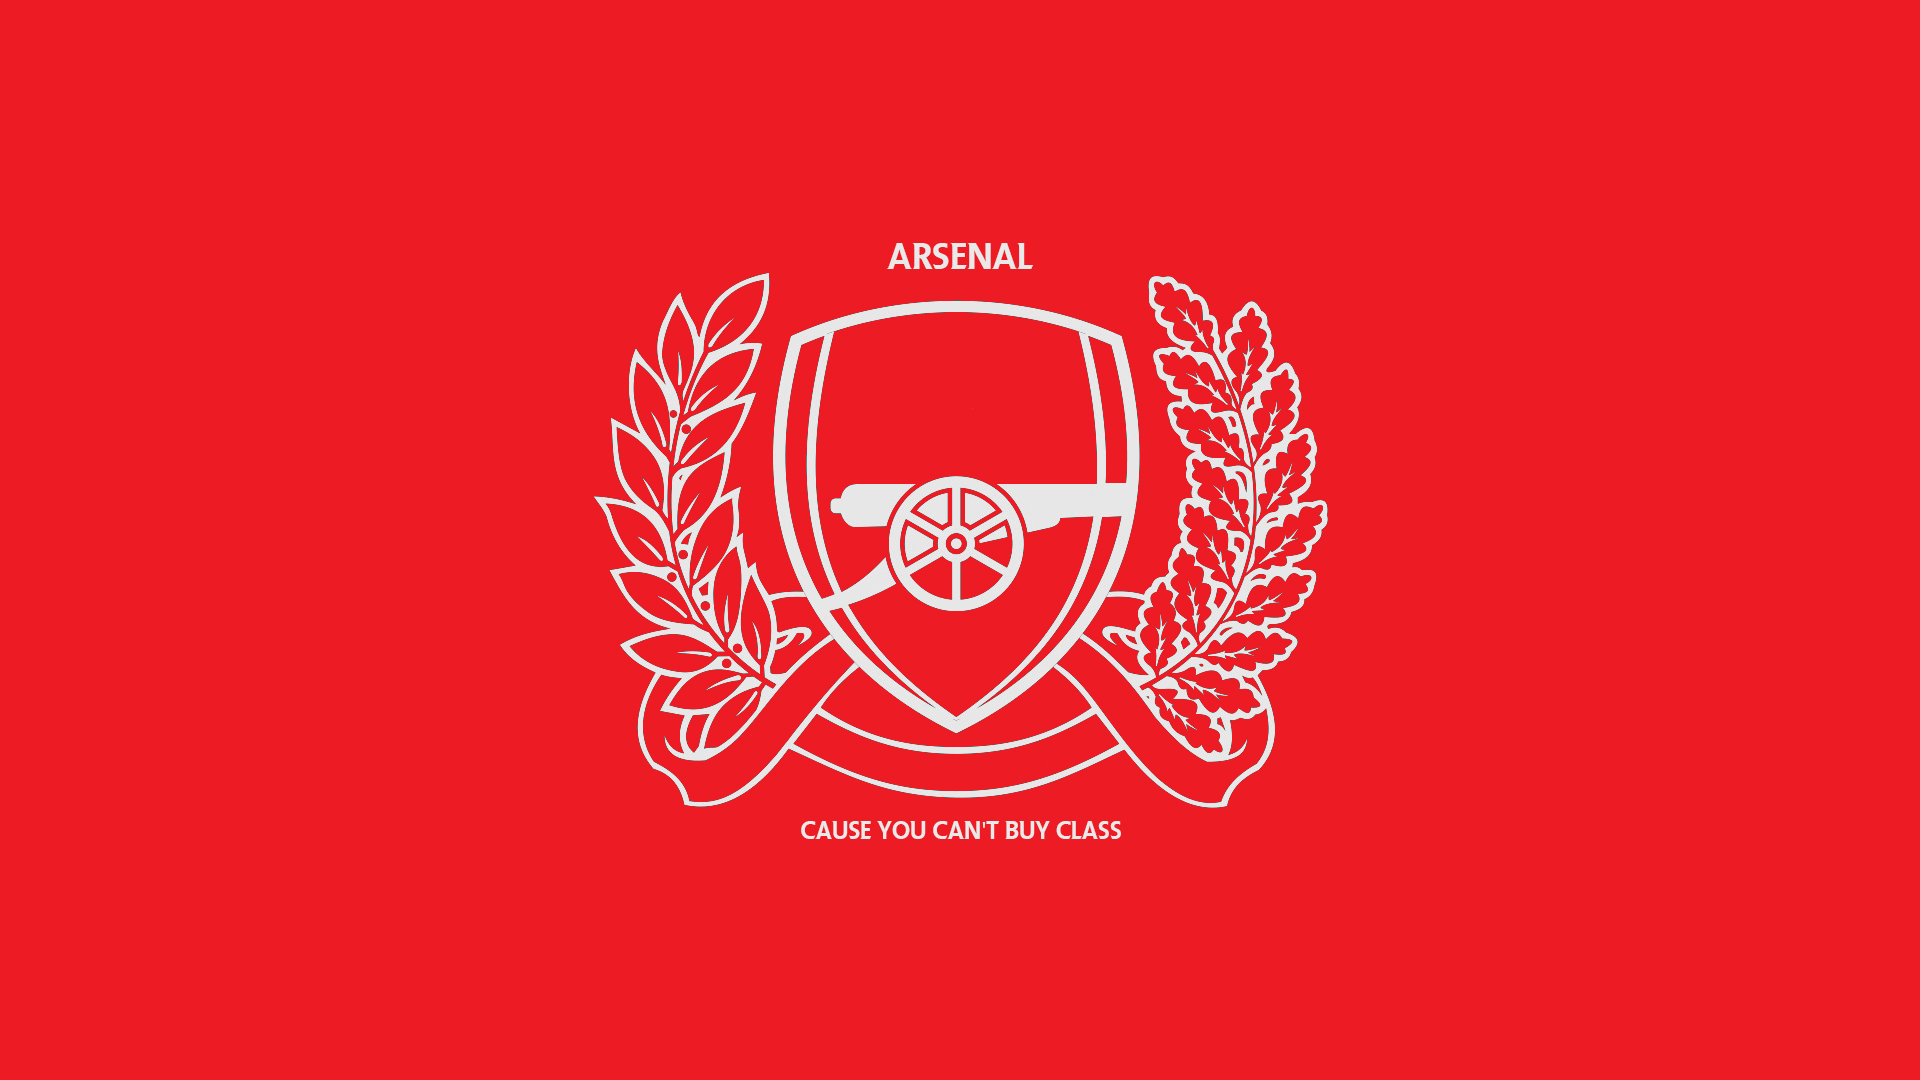 Transparent Arsenal Logo Png 1920x1080 Download Hd Wallpaper Wallpapertip